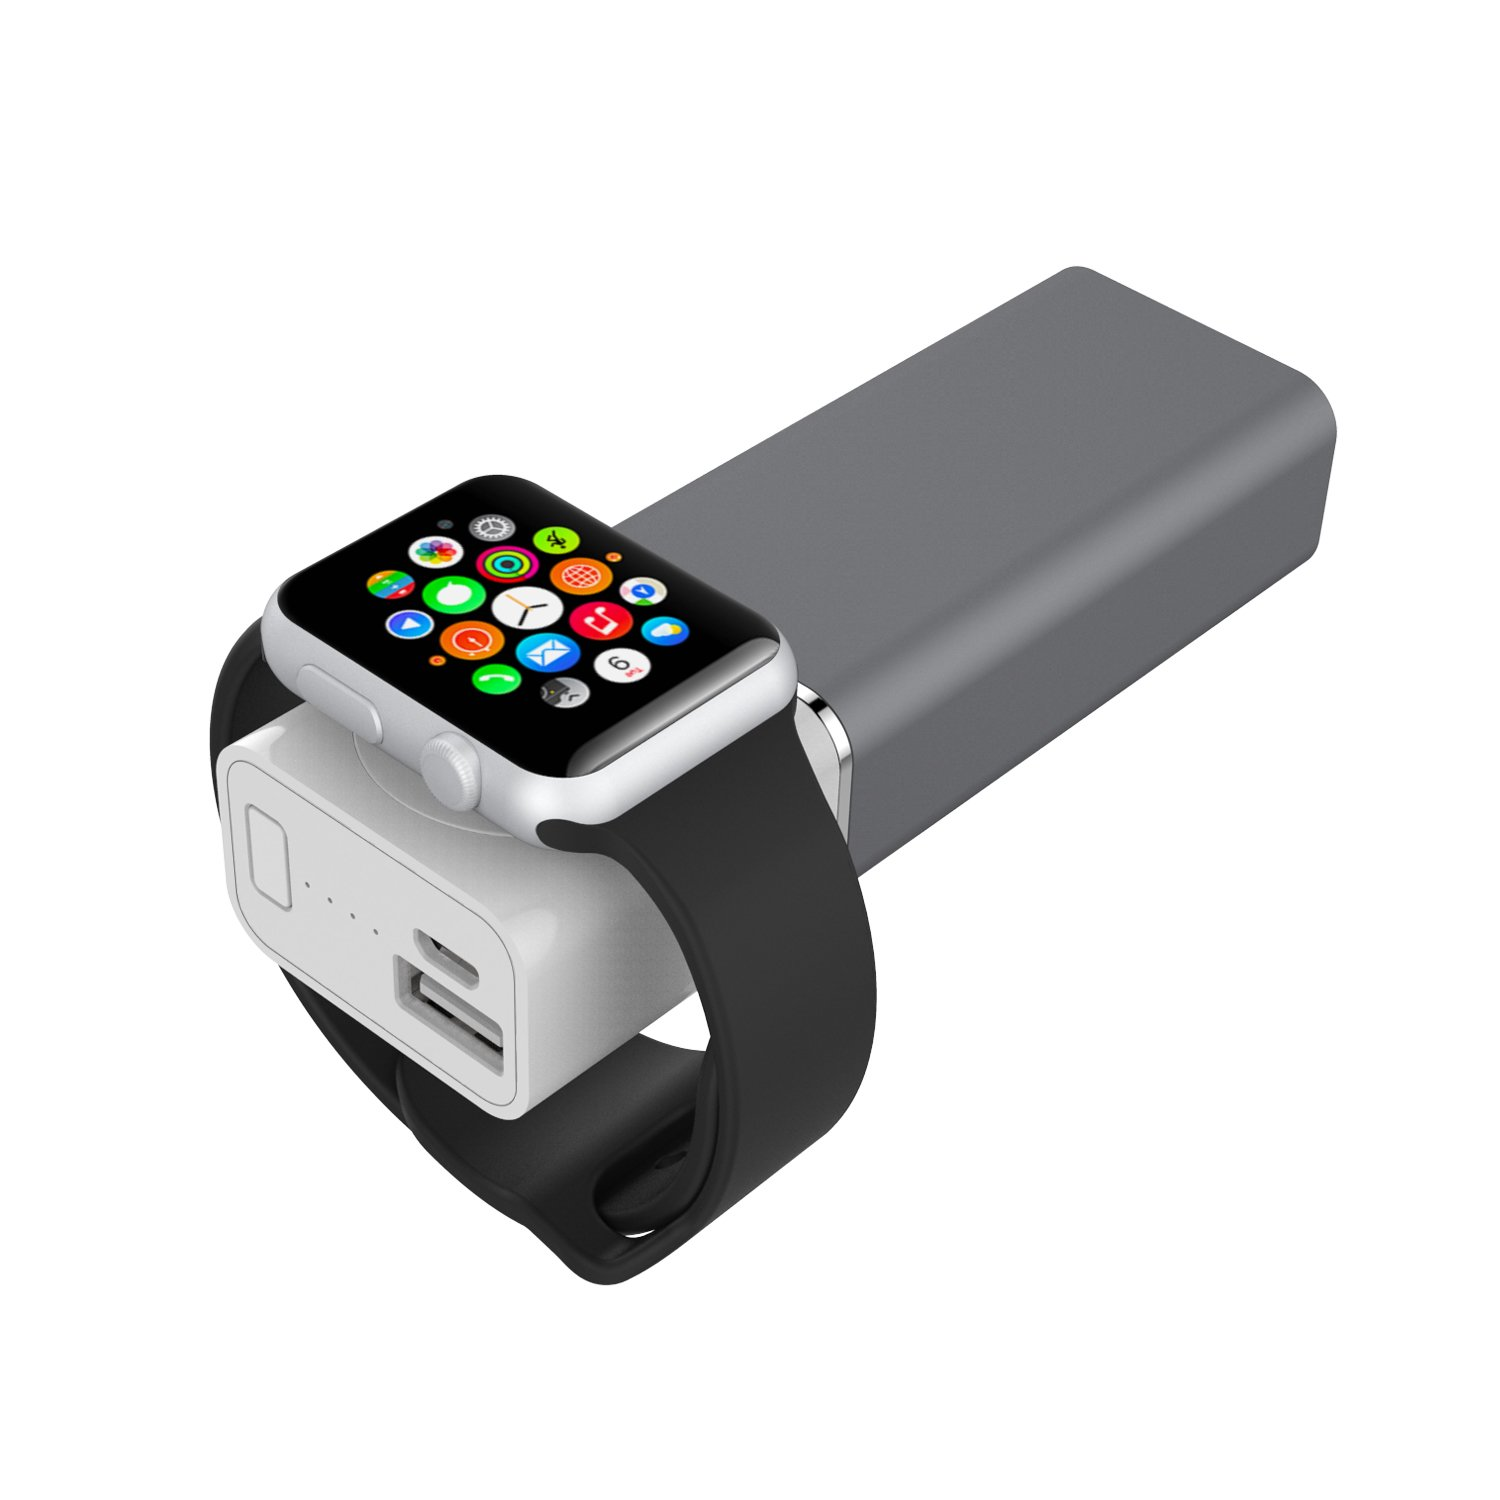 new arrival f3f2b cecc2 Element Works USA EW-AWPB2-SG Dual USB Portable Charger and External  Battery Pack for Apple Watch in Space Grey